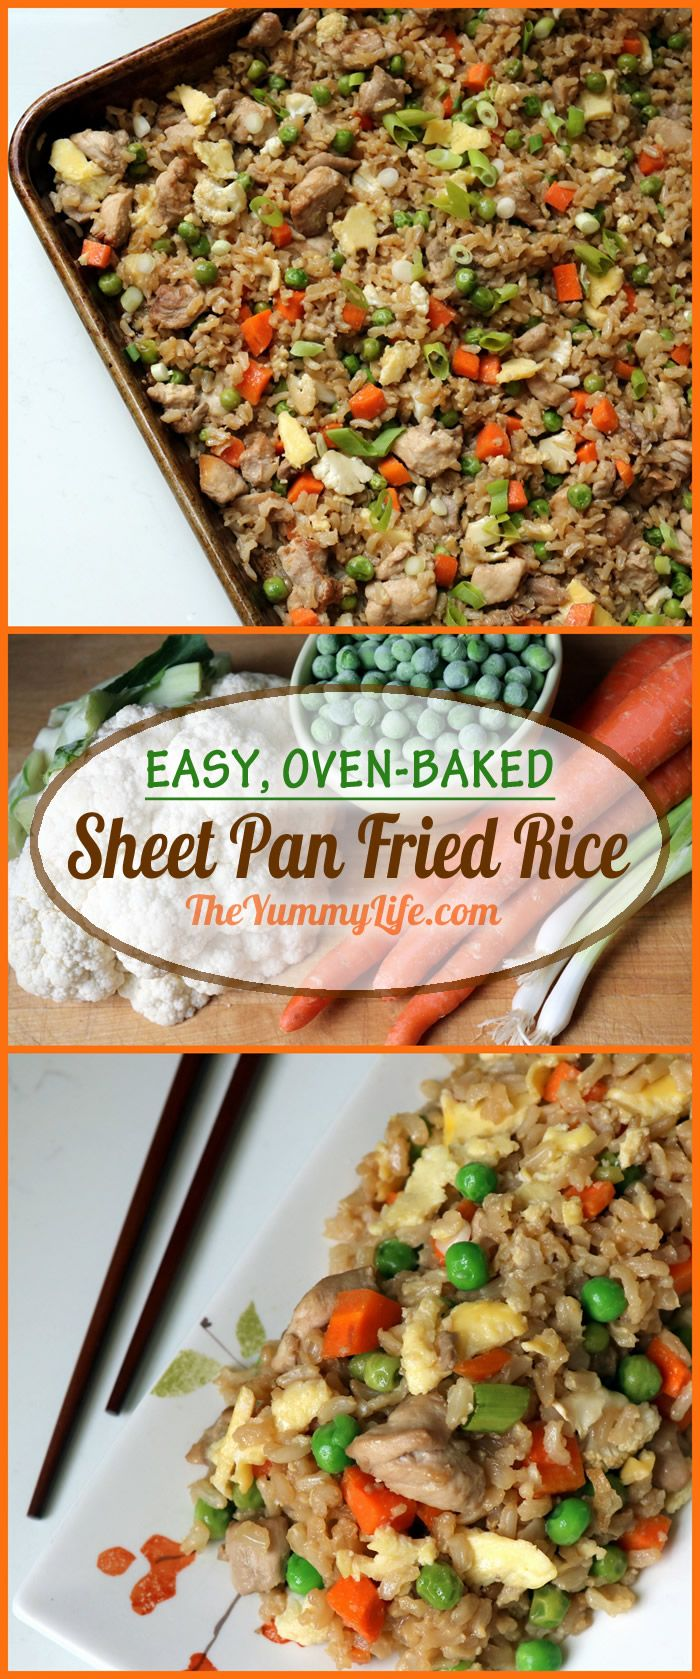 Skip the wok and make this easy, oven-baked sheet pan recipe with traditional Asian fried rice ingredients and flavors. This healthy recipe uses brown rice. From TheYummyLife.com